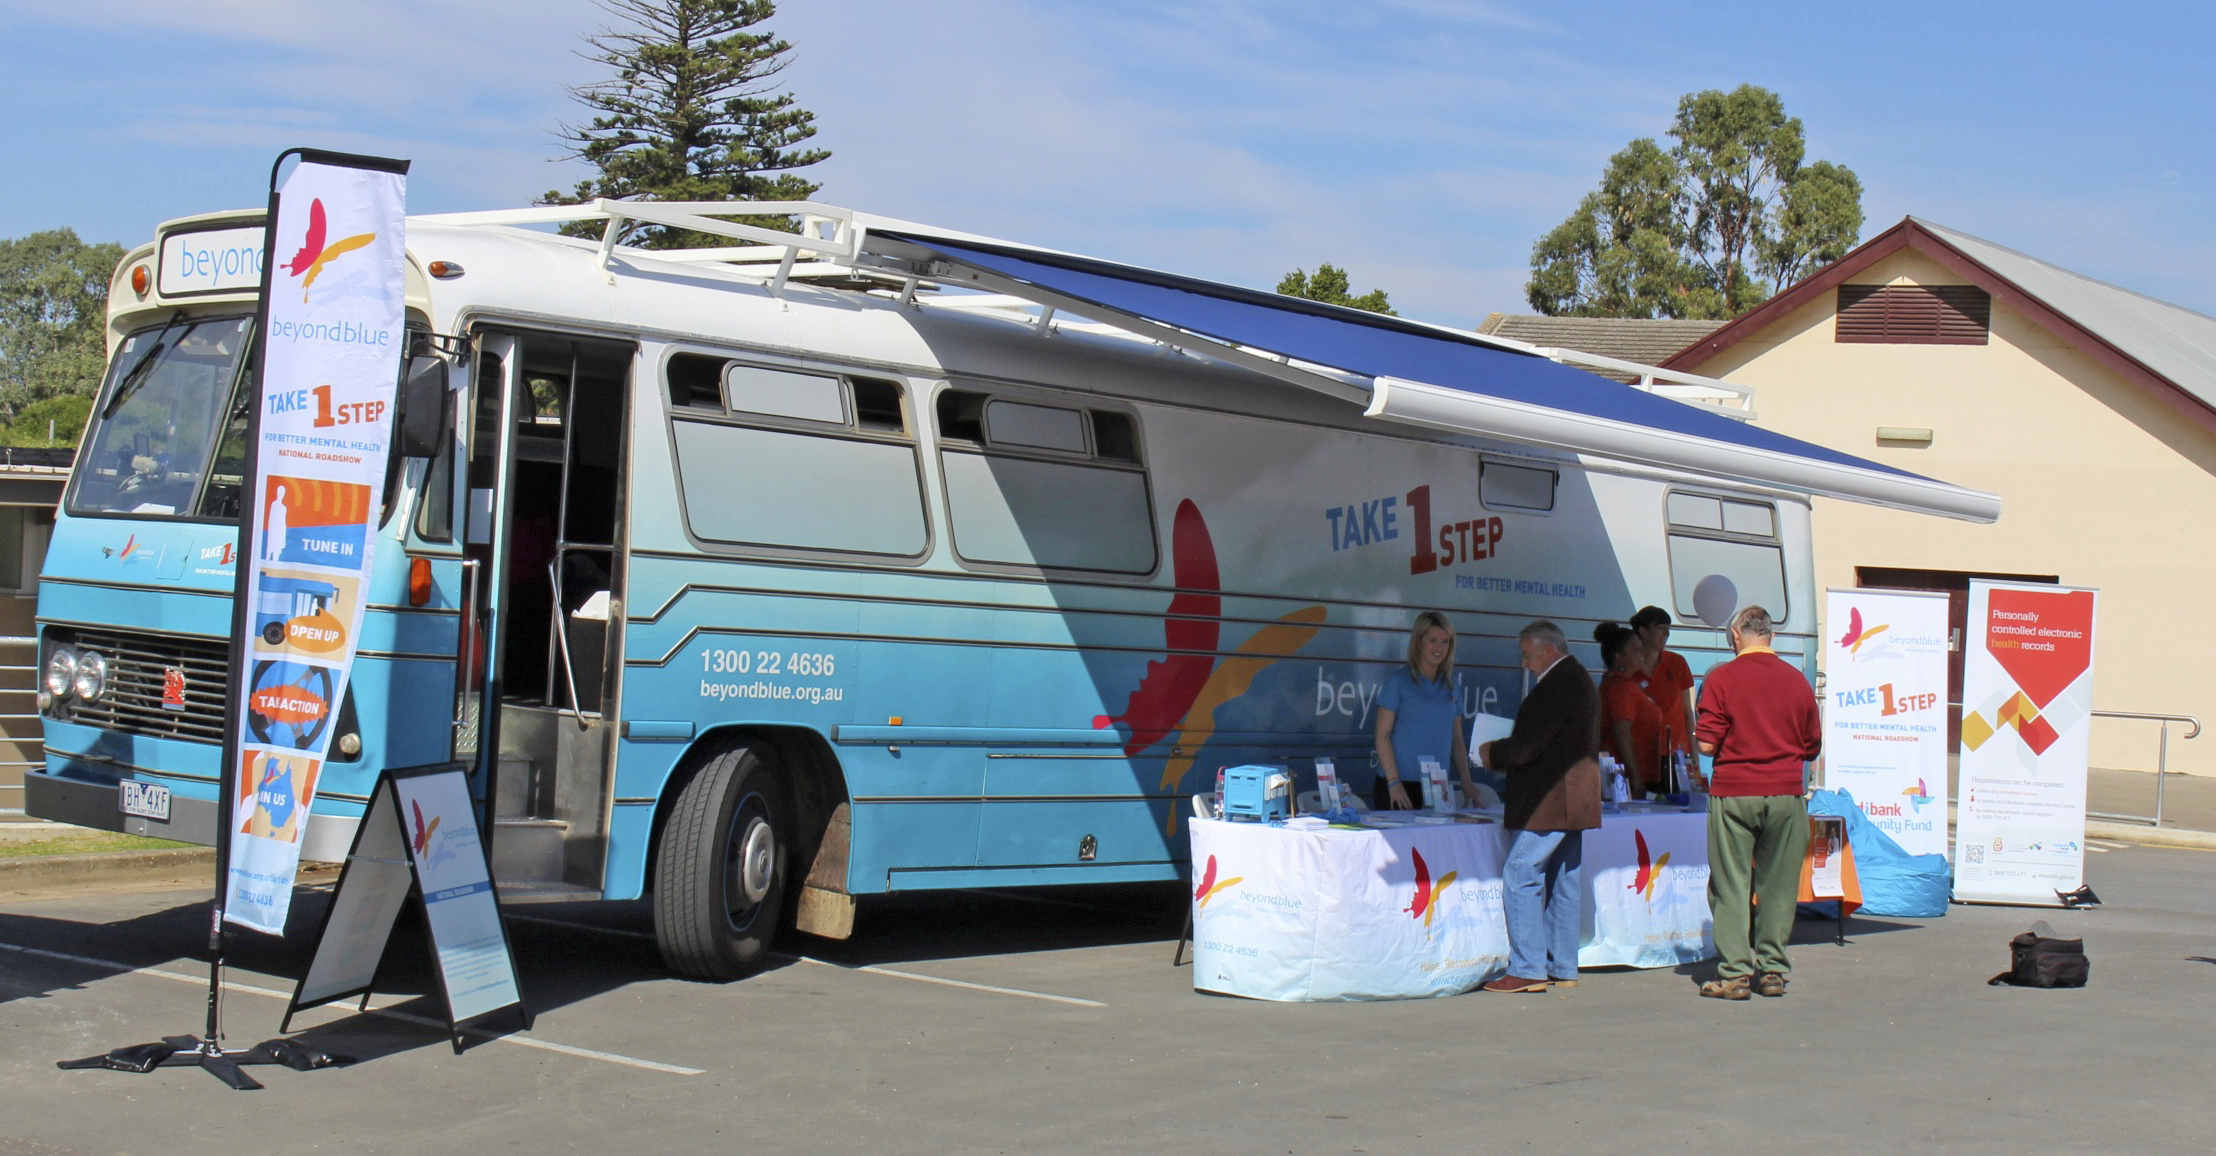 The Roadshow visited a Close the Gap event in Strathalbyn.